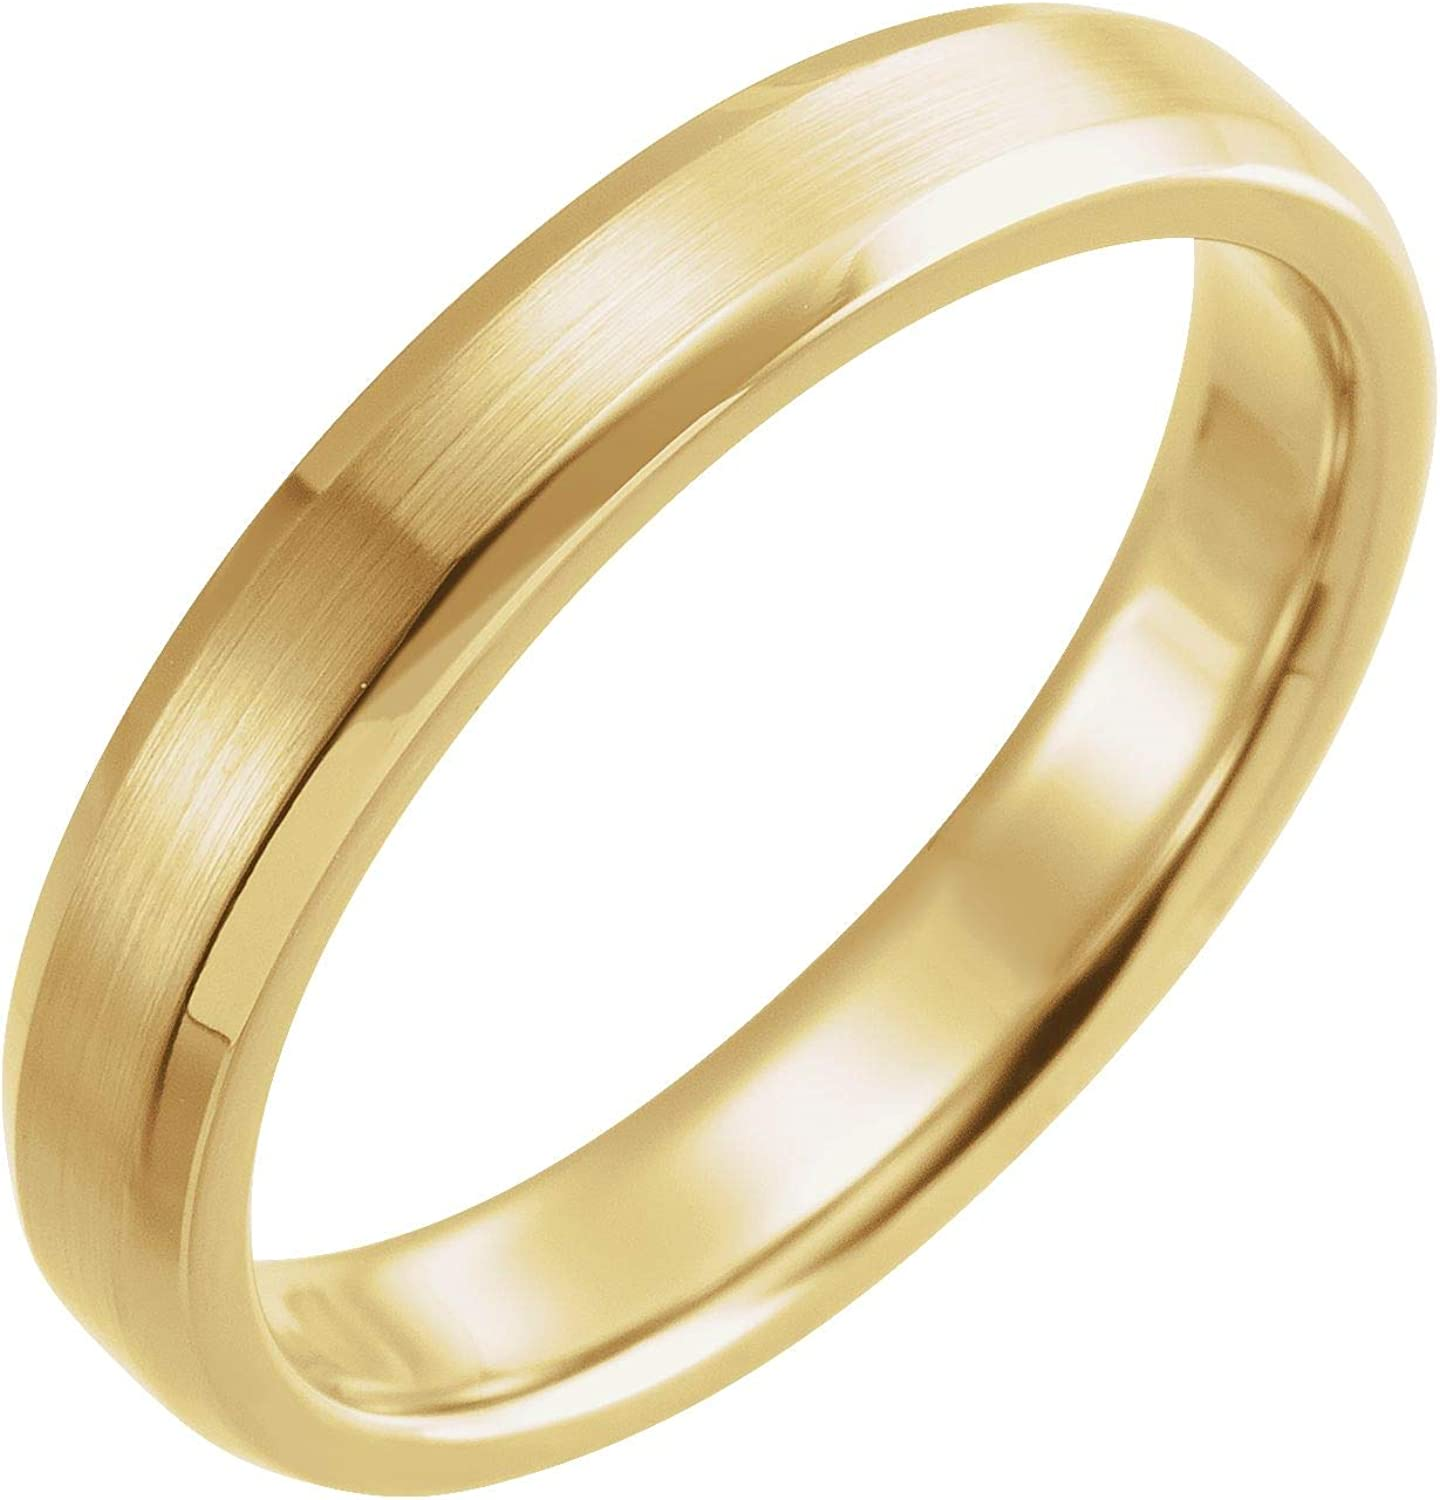 Diamond2Deal 18k Yellow Gold online shop Large discharge sale 4 Band Edge Comfort-Fit mm Beveled